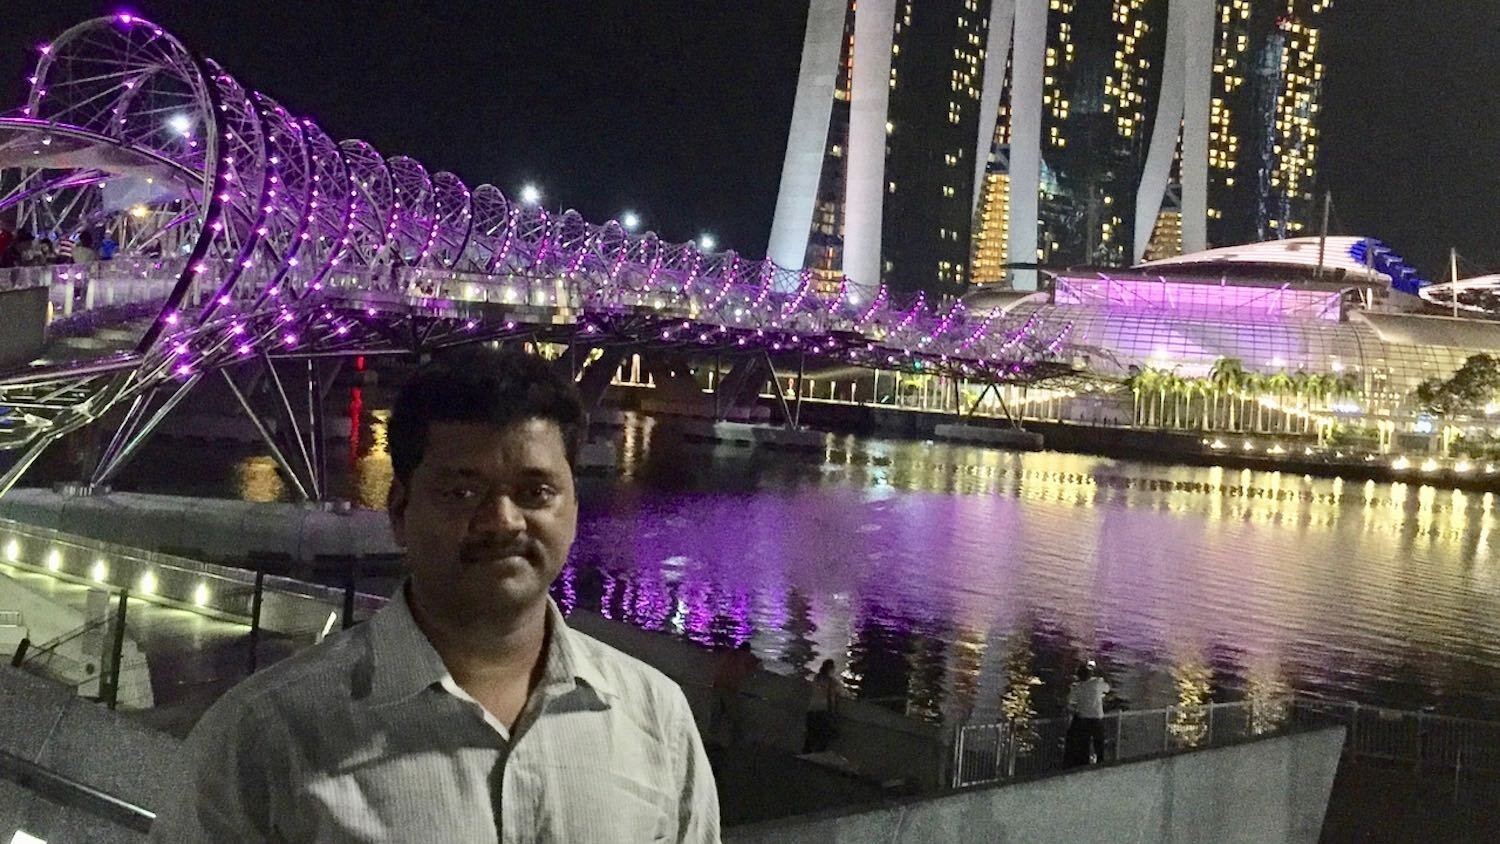 7 cyril yogi's past events in singapore .jpeg